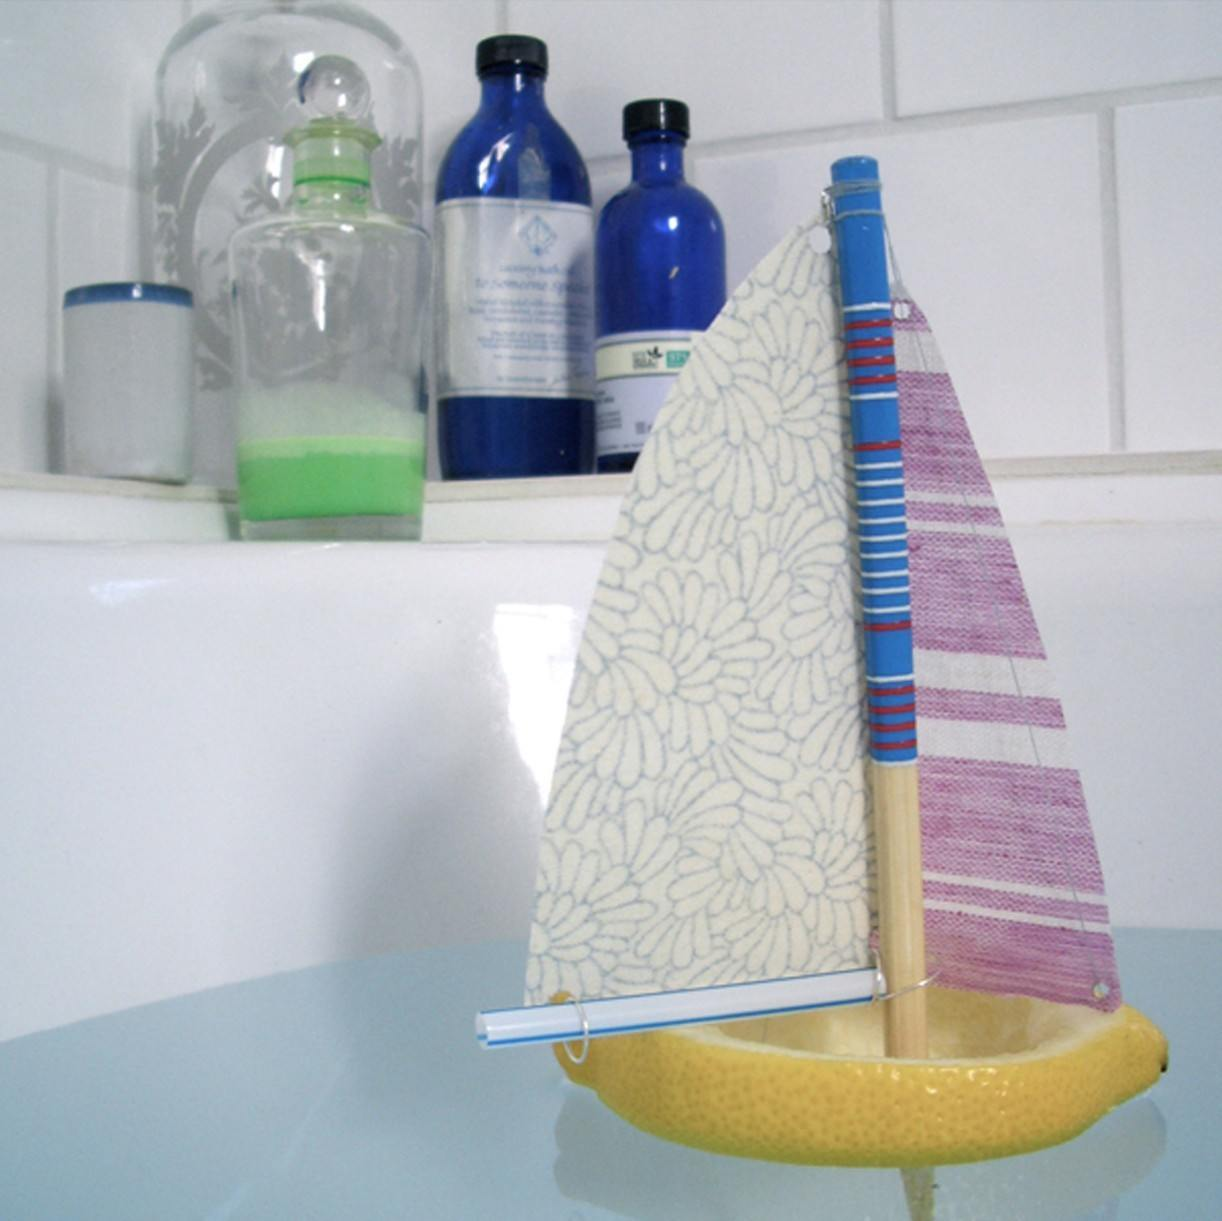 lemon boat copy.jpg